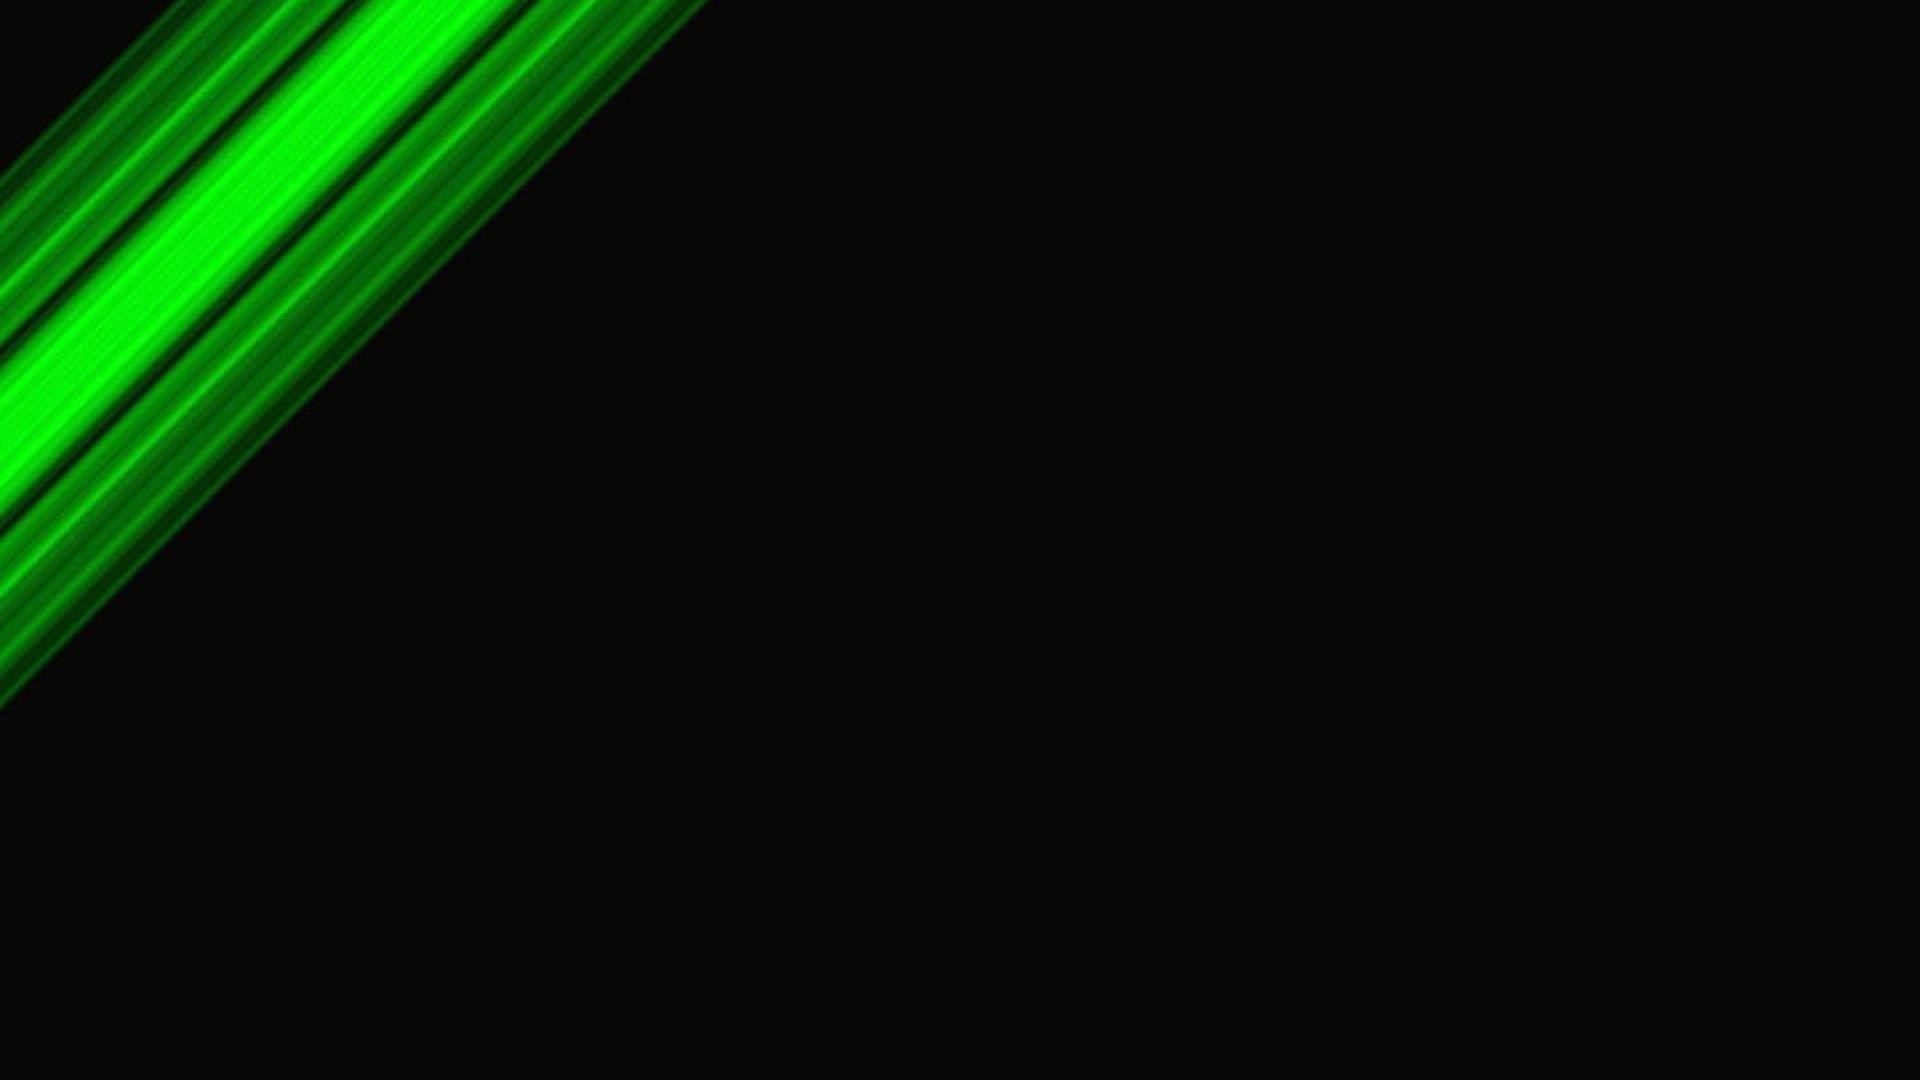 1920x1080 Black And Green Neon Green Wallpaper Background